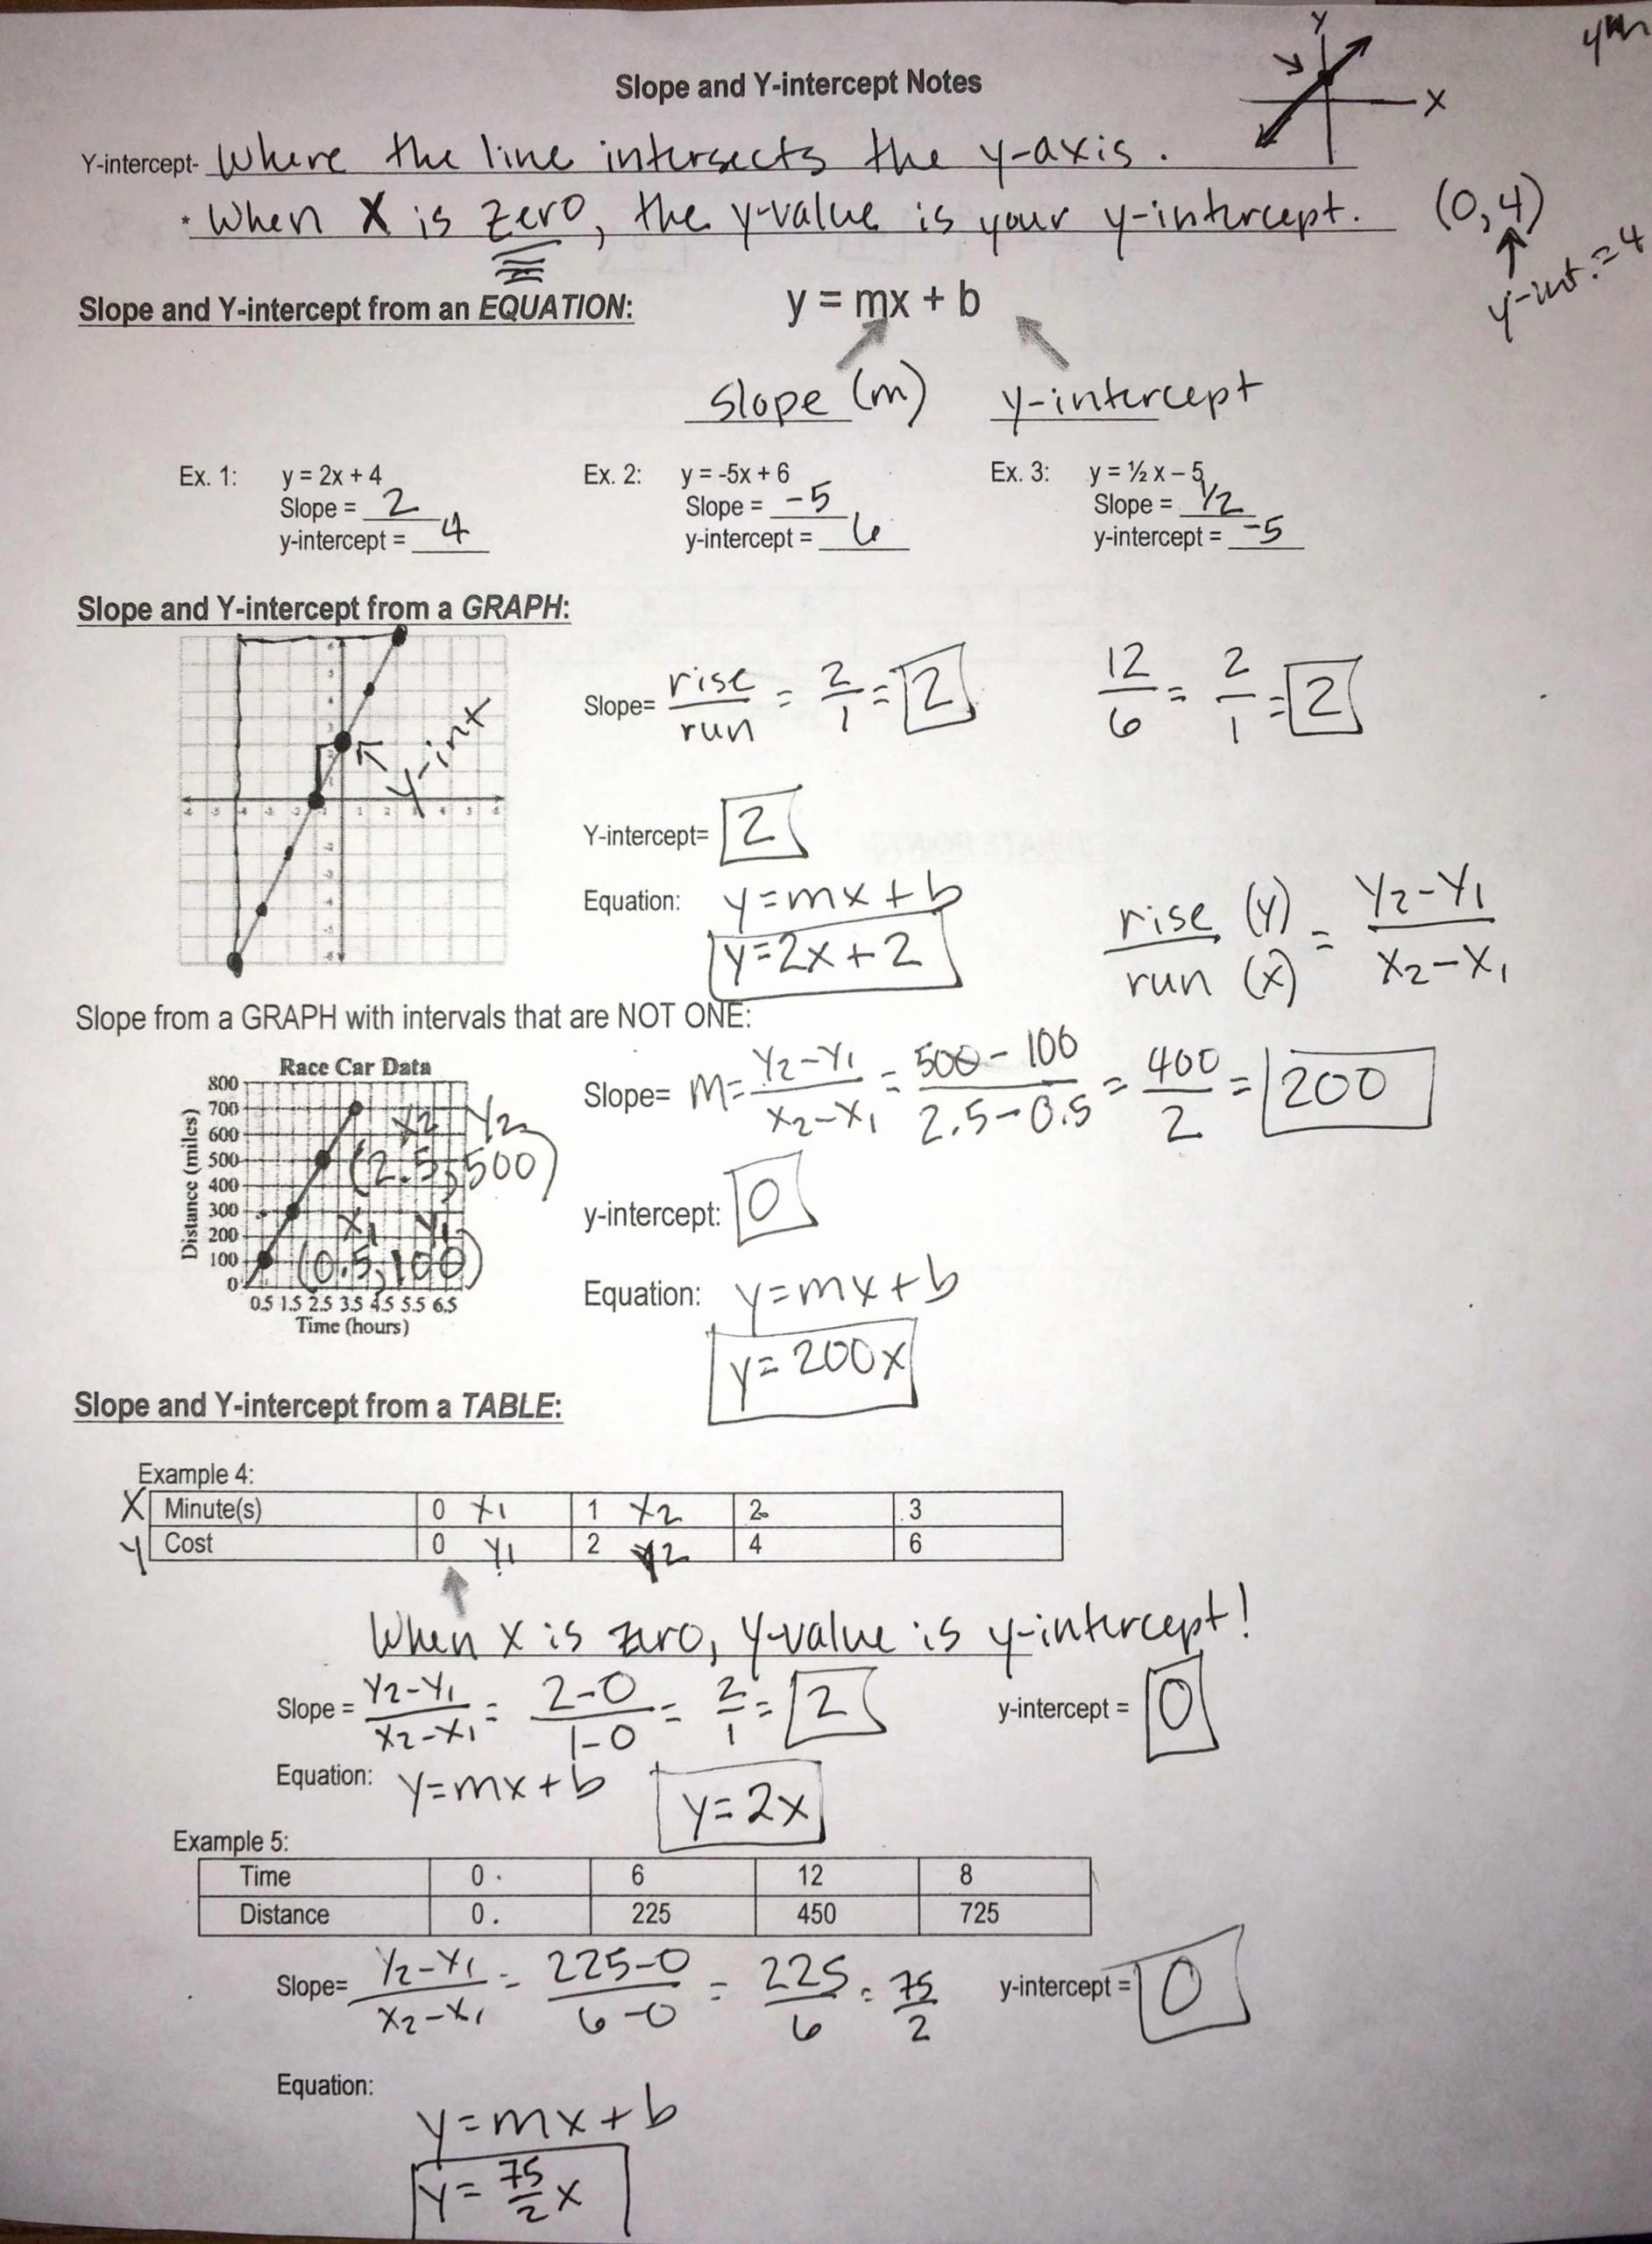 Proportional and Nonproportional Relationships Worksheet Inspirational Unit 3 Proportional and Nonproportional Relationships